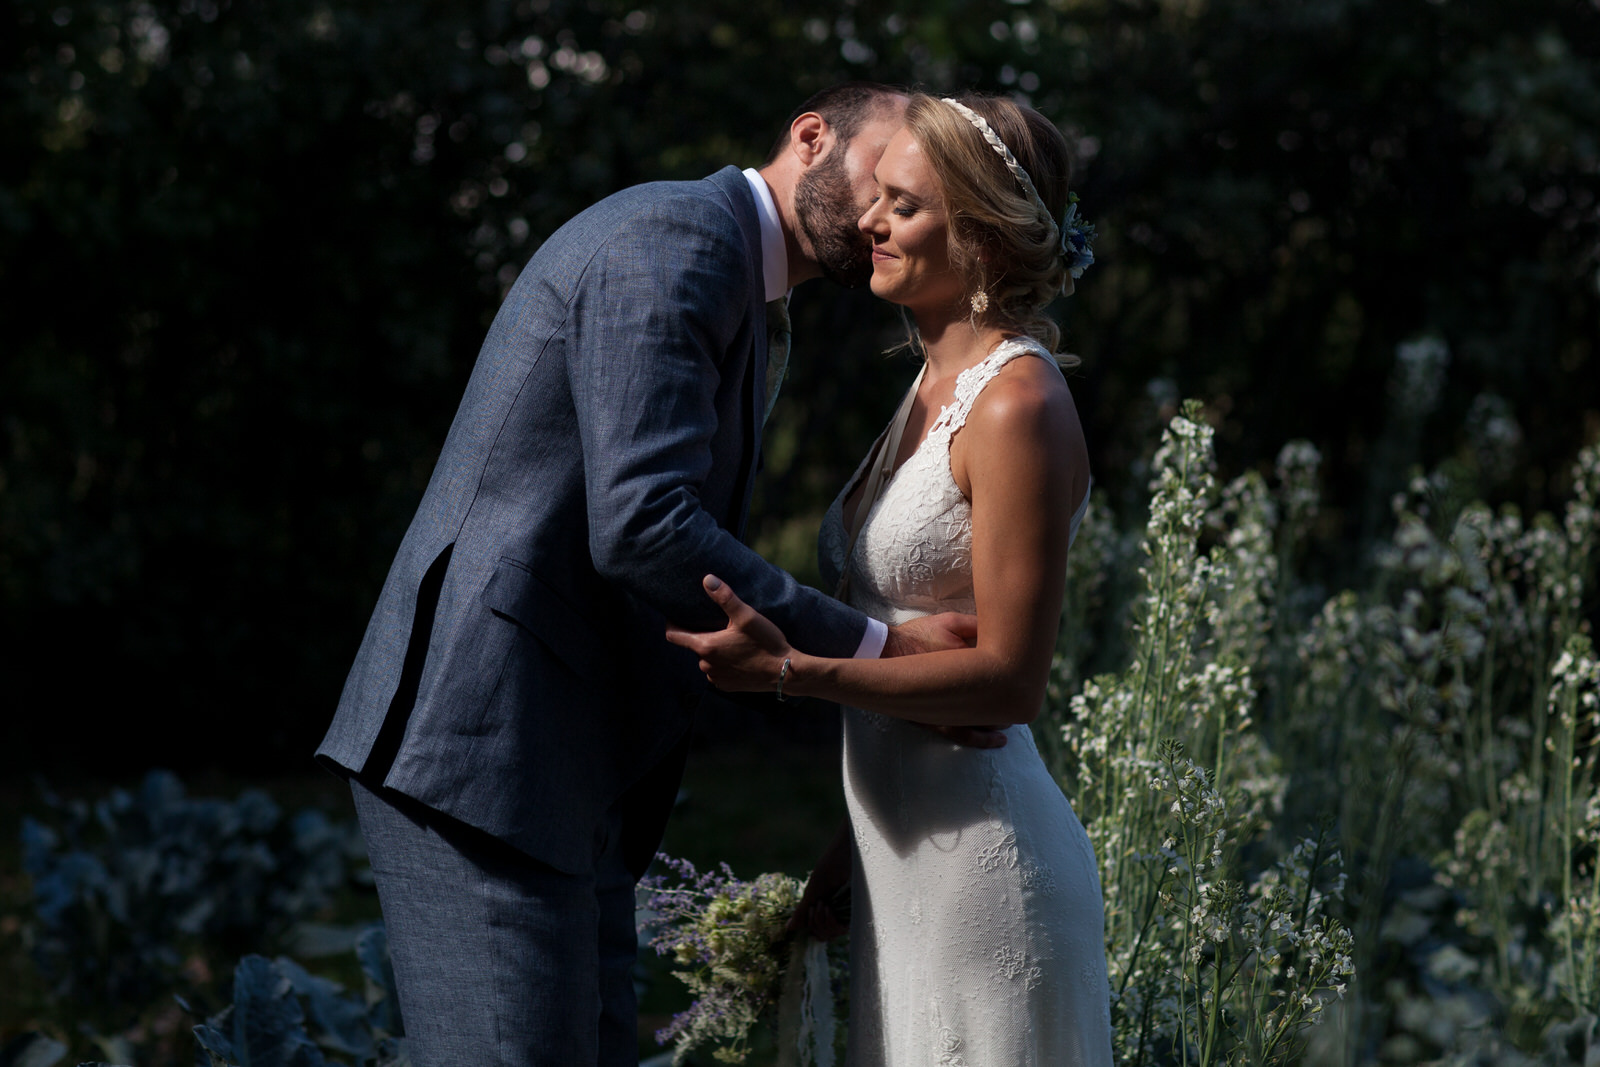 a groom kissing his bride on the cheek in bright sunlight in a garden at the farm wedding